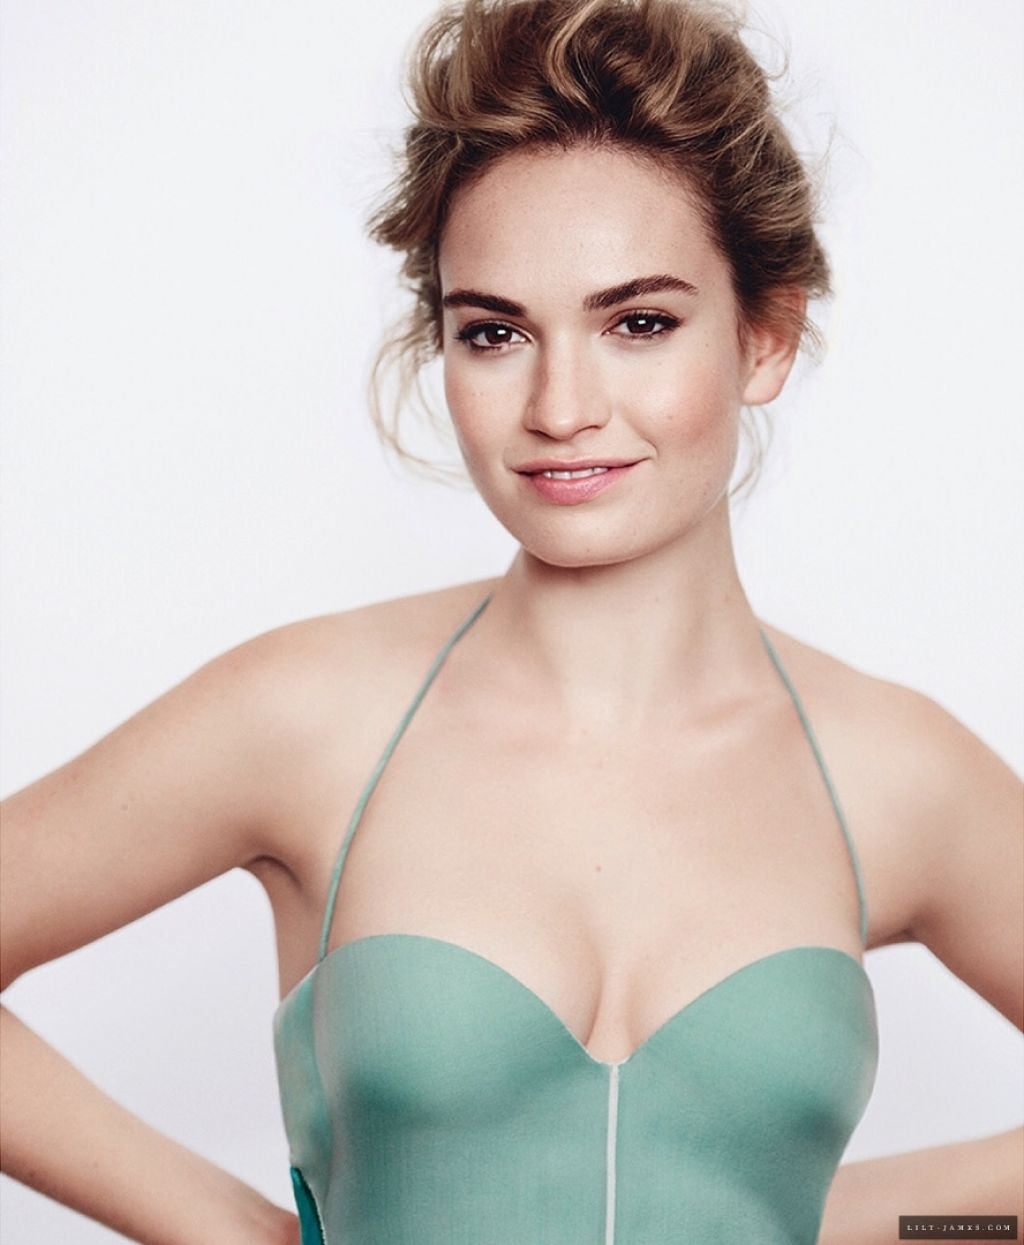 http://celebmafia.com/wp-content/uploads/2017/12/lily-james-photoshoot-for-vanity-fair-november-2017-2.jpg